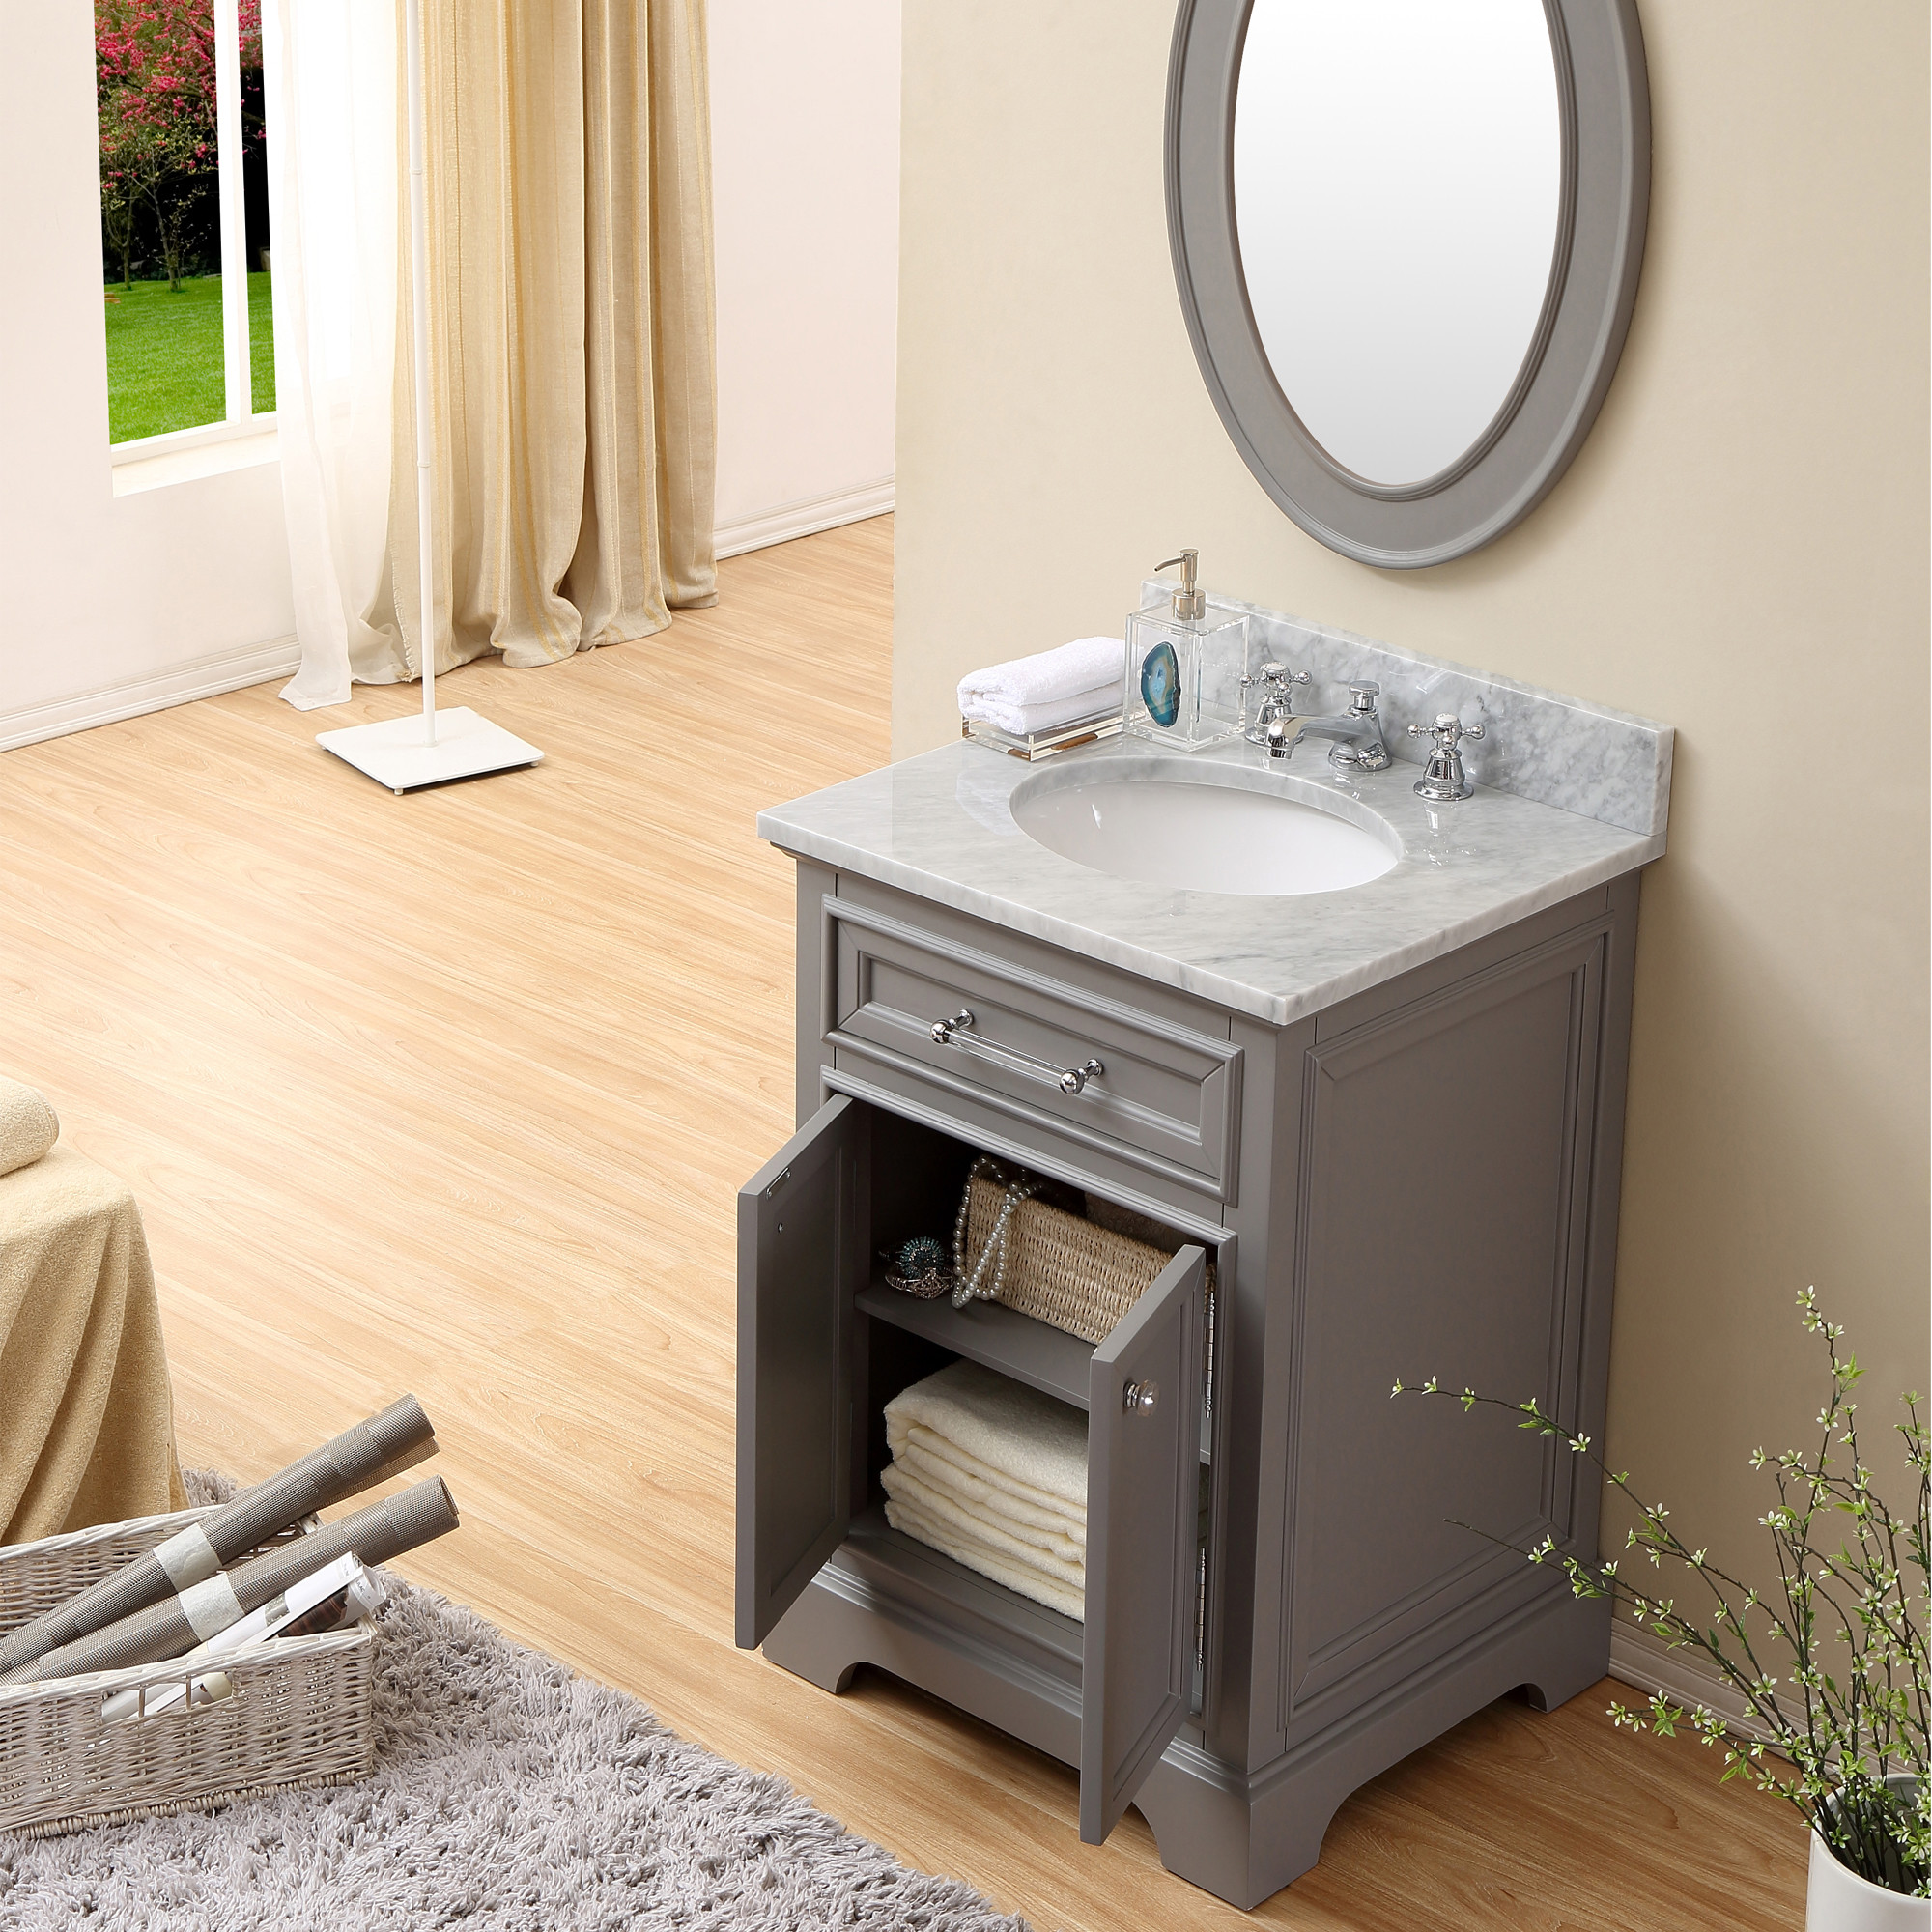 wondrous of for inch vanity deep double wall top vanities design sink furniture depot contemporary home ideas lowes bathroom mount bathroo